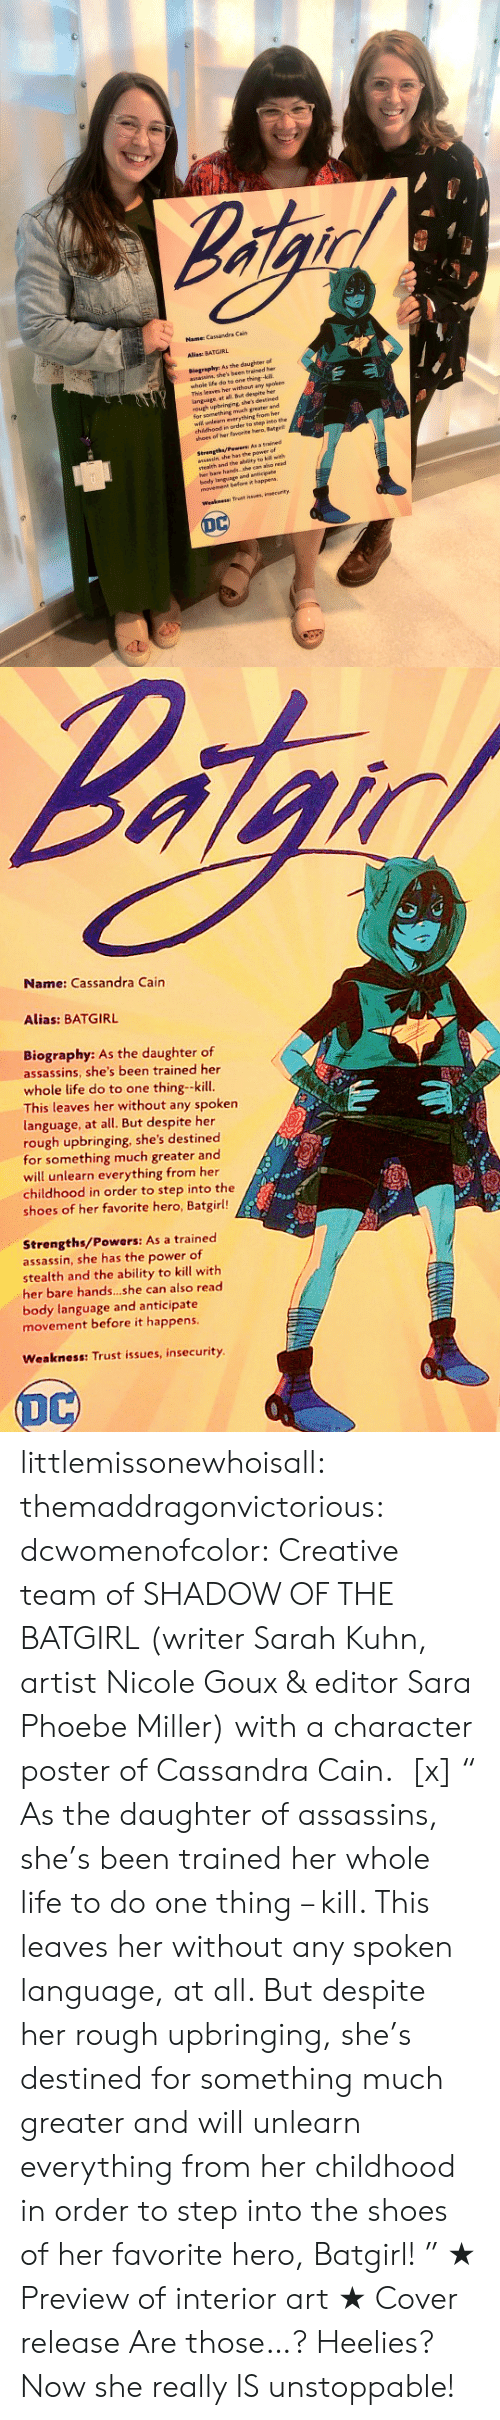 "alias: Name Cassandra Cain  Alies: BATGIRL  Biegraphy: As the daughter of  aassin she's been trained her  whole ife do to ene thing-kl  This leaves her without any spoken  language at all. But despite her  ough upbringing she's devtned  for something much greater and  wil unlearn everything from her  chldhood in order to step into the  shees of her favorite hera Batg  Strengtha/Pewers: As a trained  assasin ahe has the power of  ealth and the abity to ki with  her bare hands she can ahe read  body language and anticpate  movement before it happens  Weakneas Traust nsues, insecurity  DC   afge  Name: Cassandra Cain  Alias: BATGIRL  Biography: As the daughter of  assassins, she's been trained her  whole life do to one thing-kill  This leaves her without any spoken  language, at all. But despite her  rough upbringing, she's destined  for something much greater and  will unlearn everything from her  childhood in order to step into the  shoes of her favorite hero, Batgirl!!  Strengths/Powers: As a trained  assassin, she has the power of  stealth and the ability to kill with  her bare hands..she can also read  body language and anticipate  movement before it happens  Weakness: Trust issues, insecurity  DC littlemissonewhoisall: themaddragonvictorious:  dcwomenofcolor:  Creative team of SHADOW OF THE BATGIRL (writer Sarah Kuhn, artist Nicole Goux & editor Sara Phoebe Miller) with a character poster of Cassandra Cain.  [x] "" As the daughter of assassins, she's been trained her whole life to do one thing – kill. This leaves her without any spoken language, at all. But despite her rough upbringing, she's destined for something much greater and will unlearn everything from her childhood in order to step into the shoes of her favorite hero, Batgirl! ""   ★ Preview of interior art  ★ Cover release  Are those…? Heelies? Now she really IS unstoppable!"